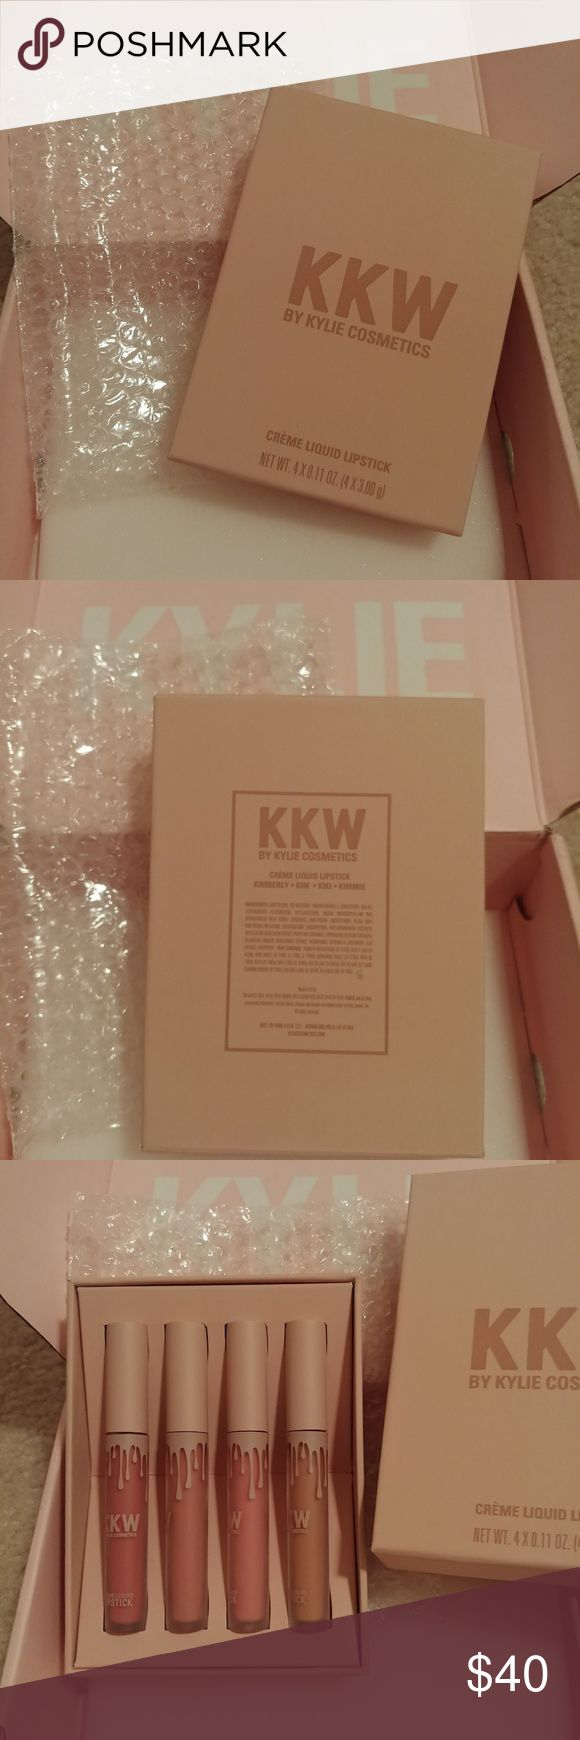 👄NWT Kylie Cosmetic KKW Lippenset NWT Kylie Cosmetic KKW Lippenset 100% …   – My Posh Picks